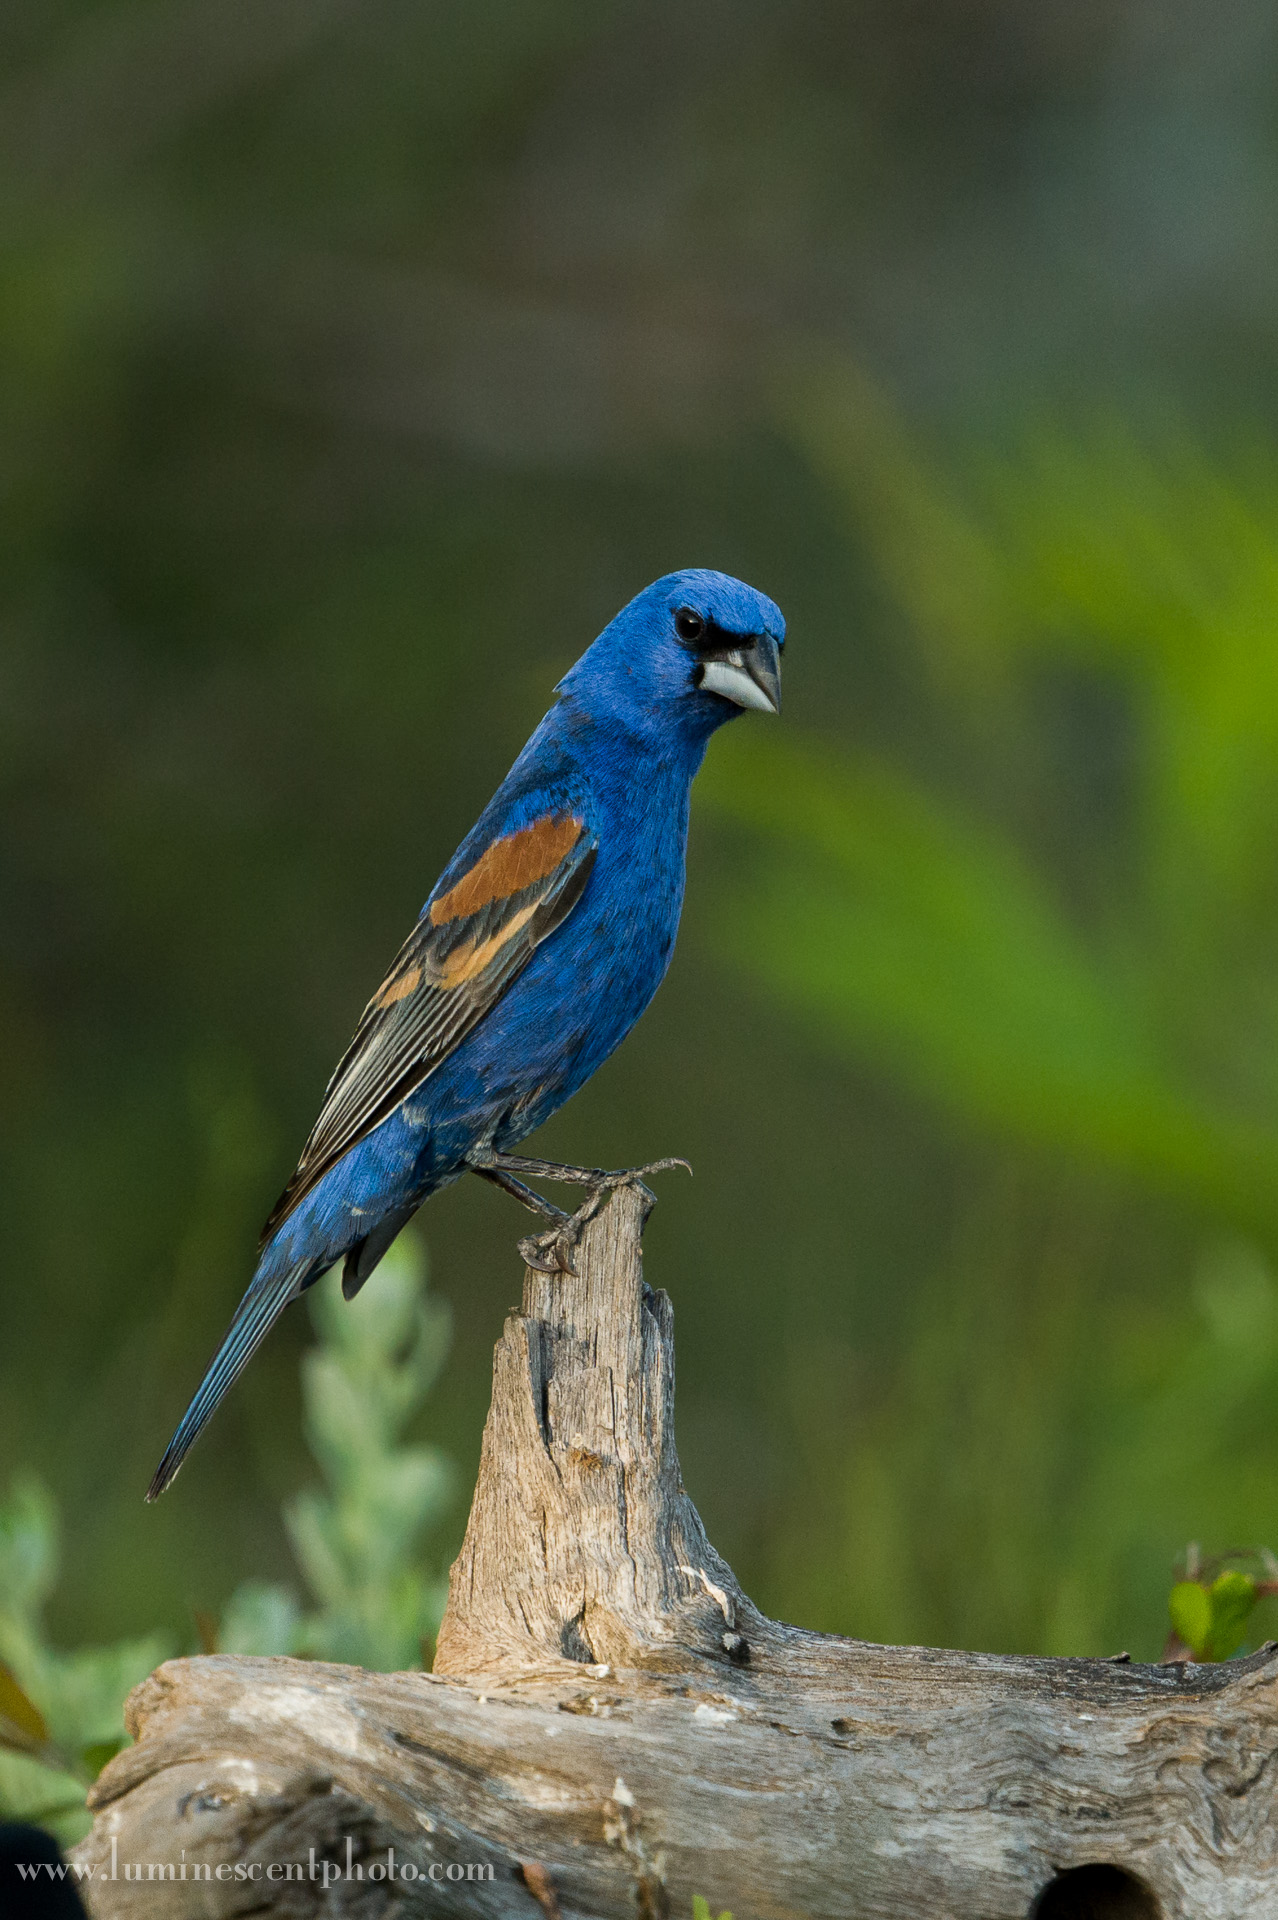 A blue grosbeak perches at Dos Venadas Ranch, Texas.